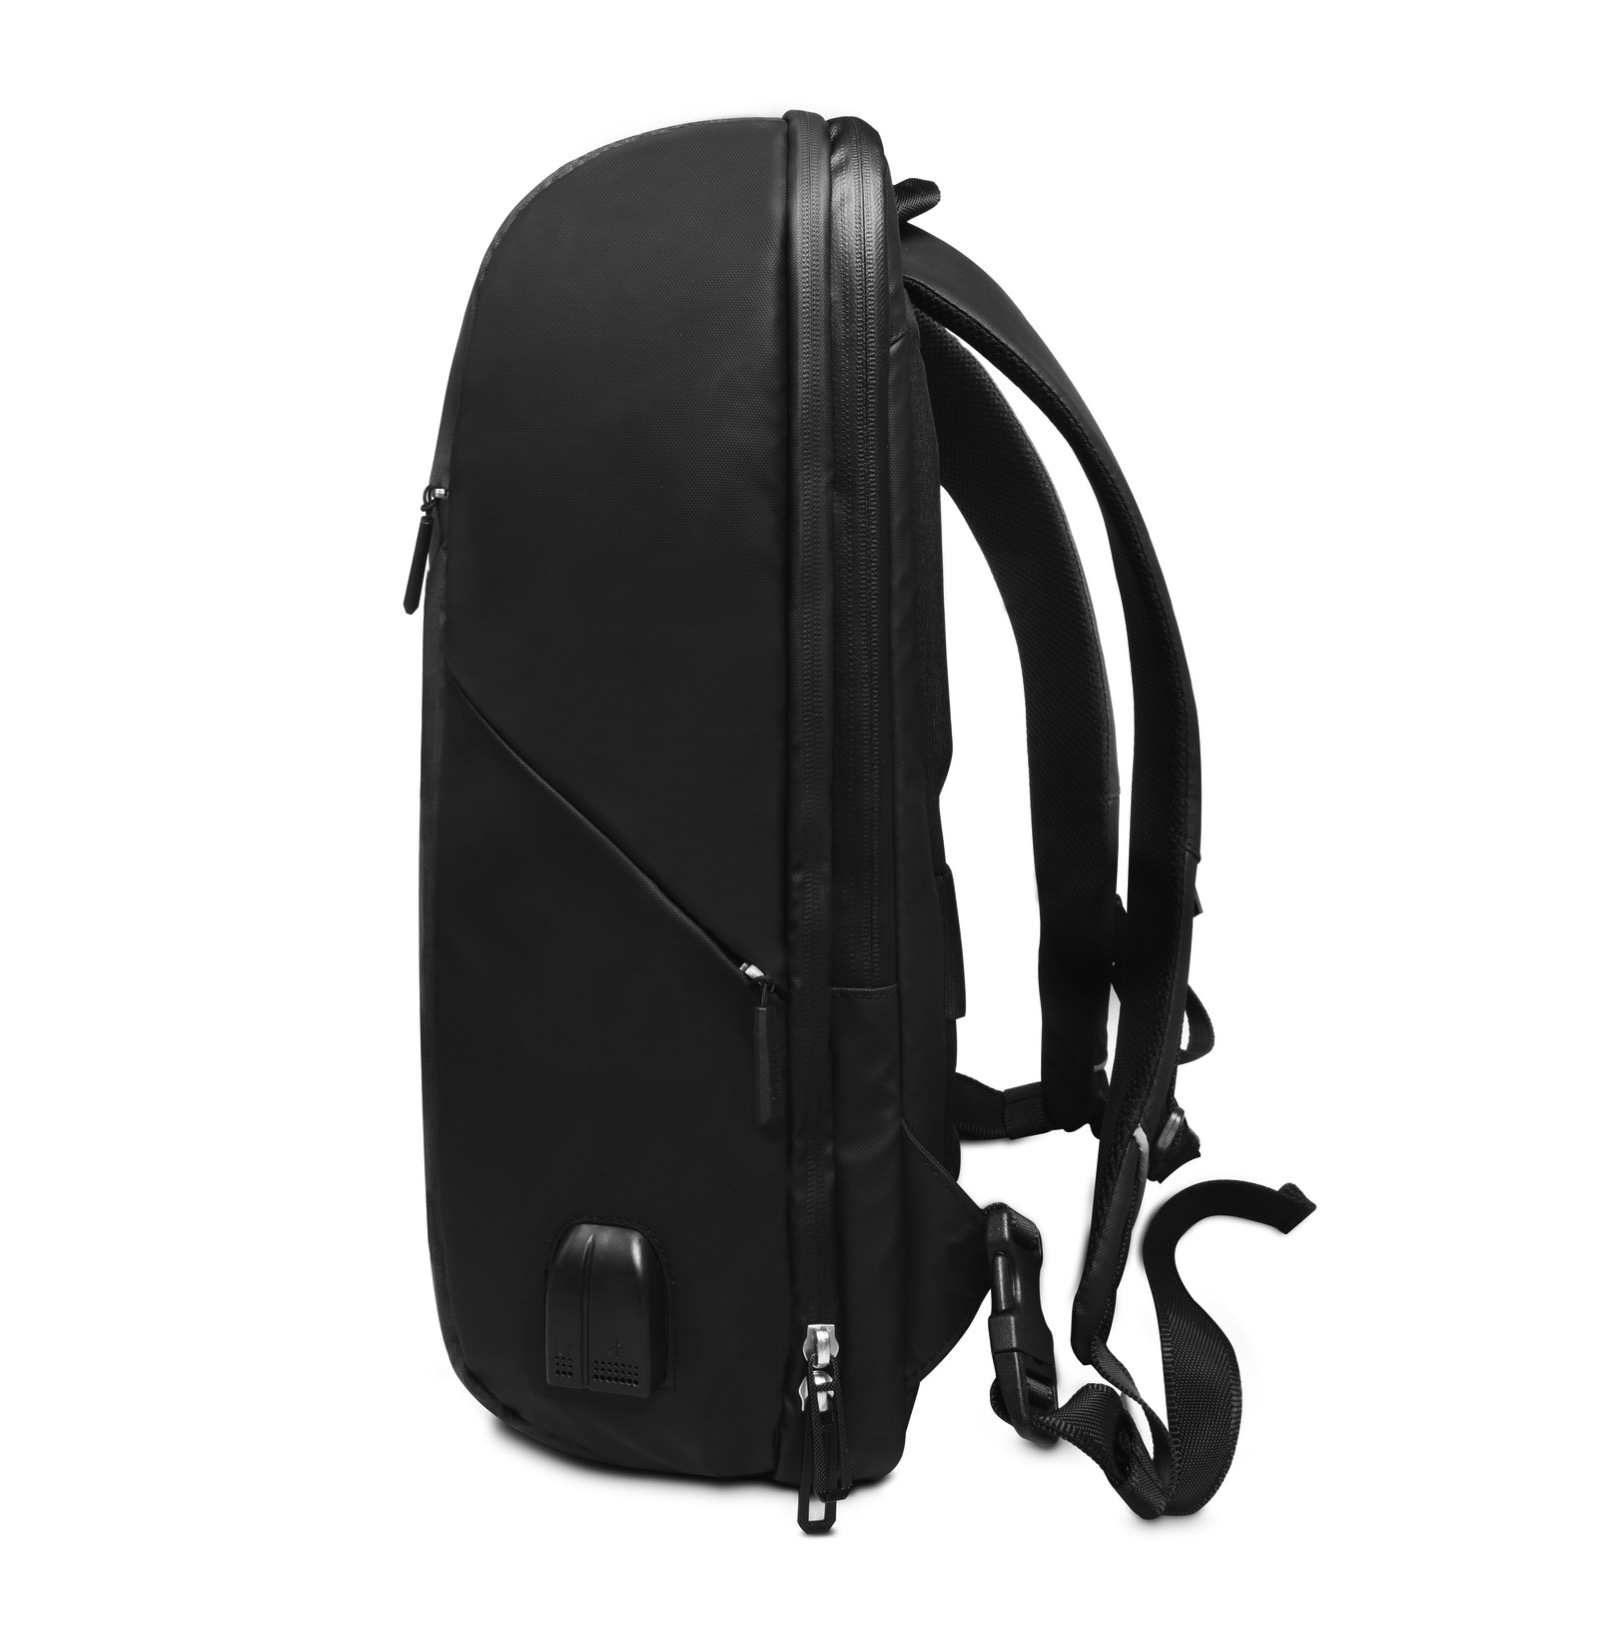 Wiwu One Pack Backpack 03